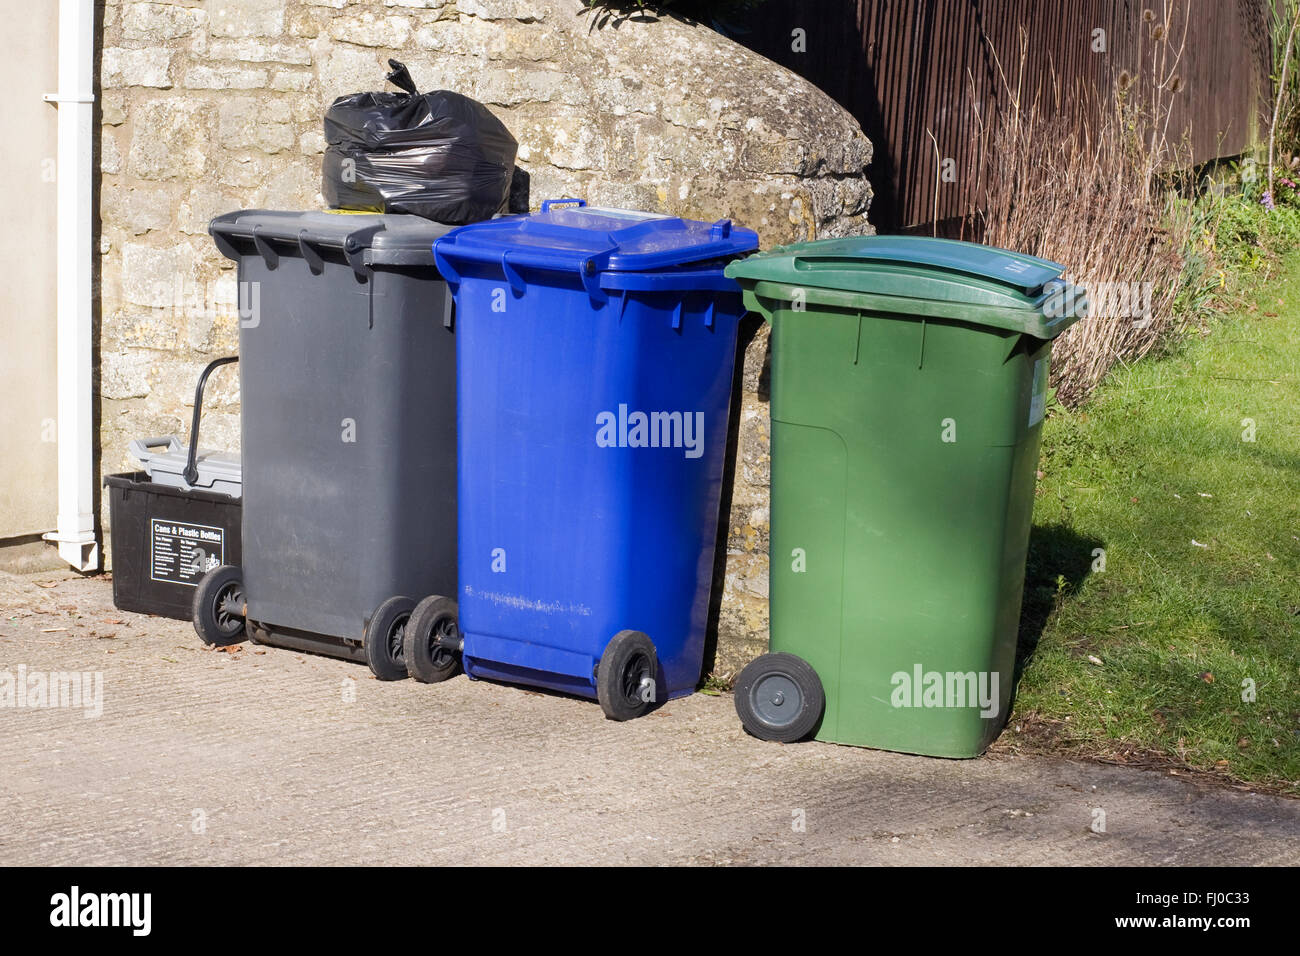 Rubbish bins standing on a driveway. - Stock Image